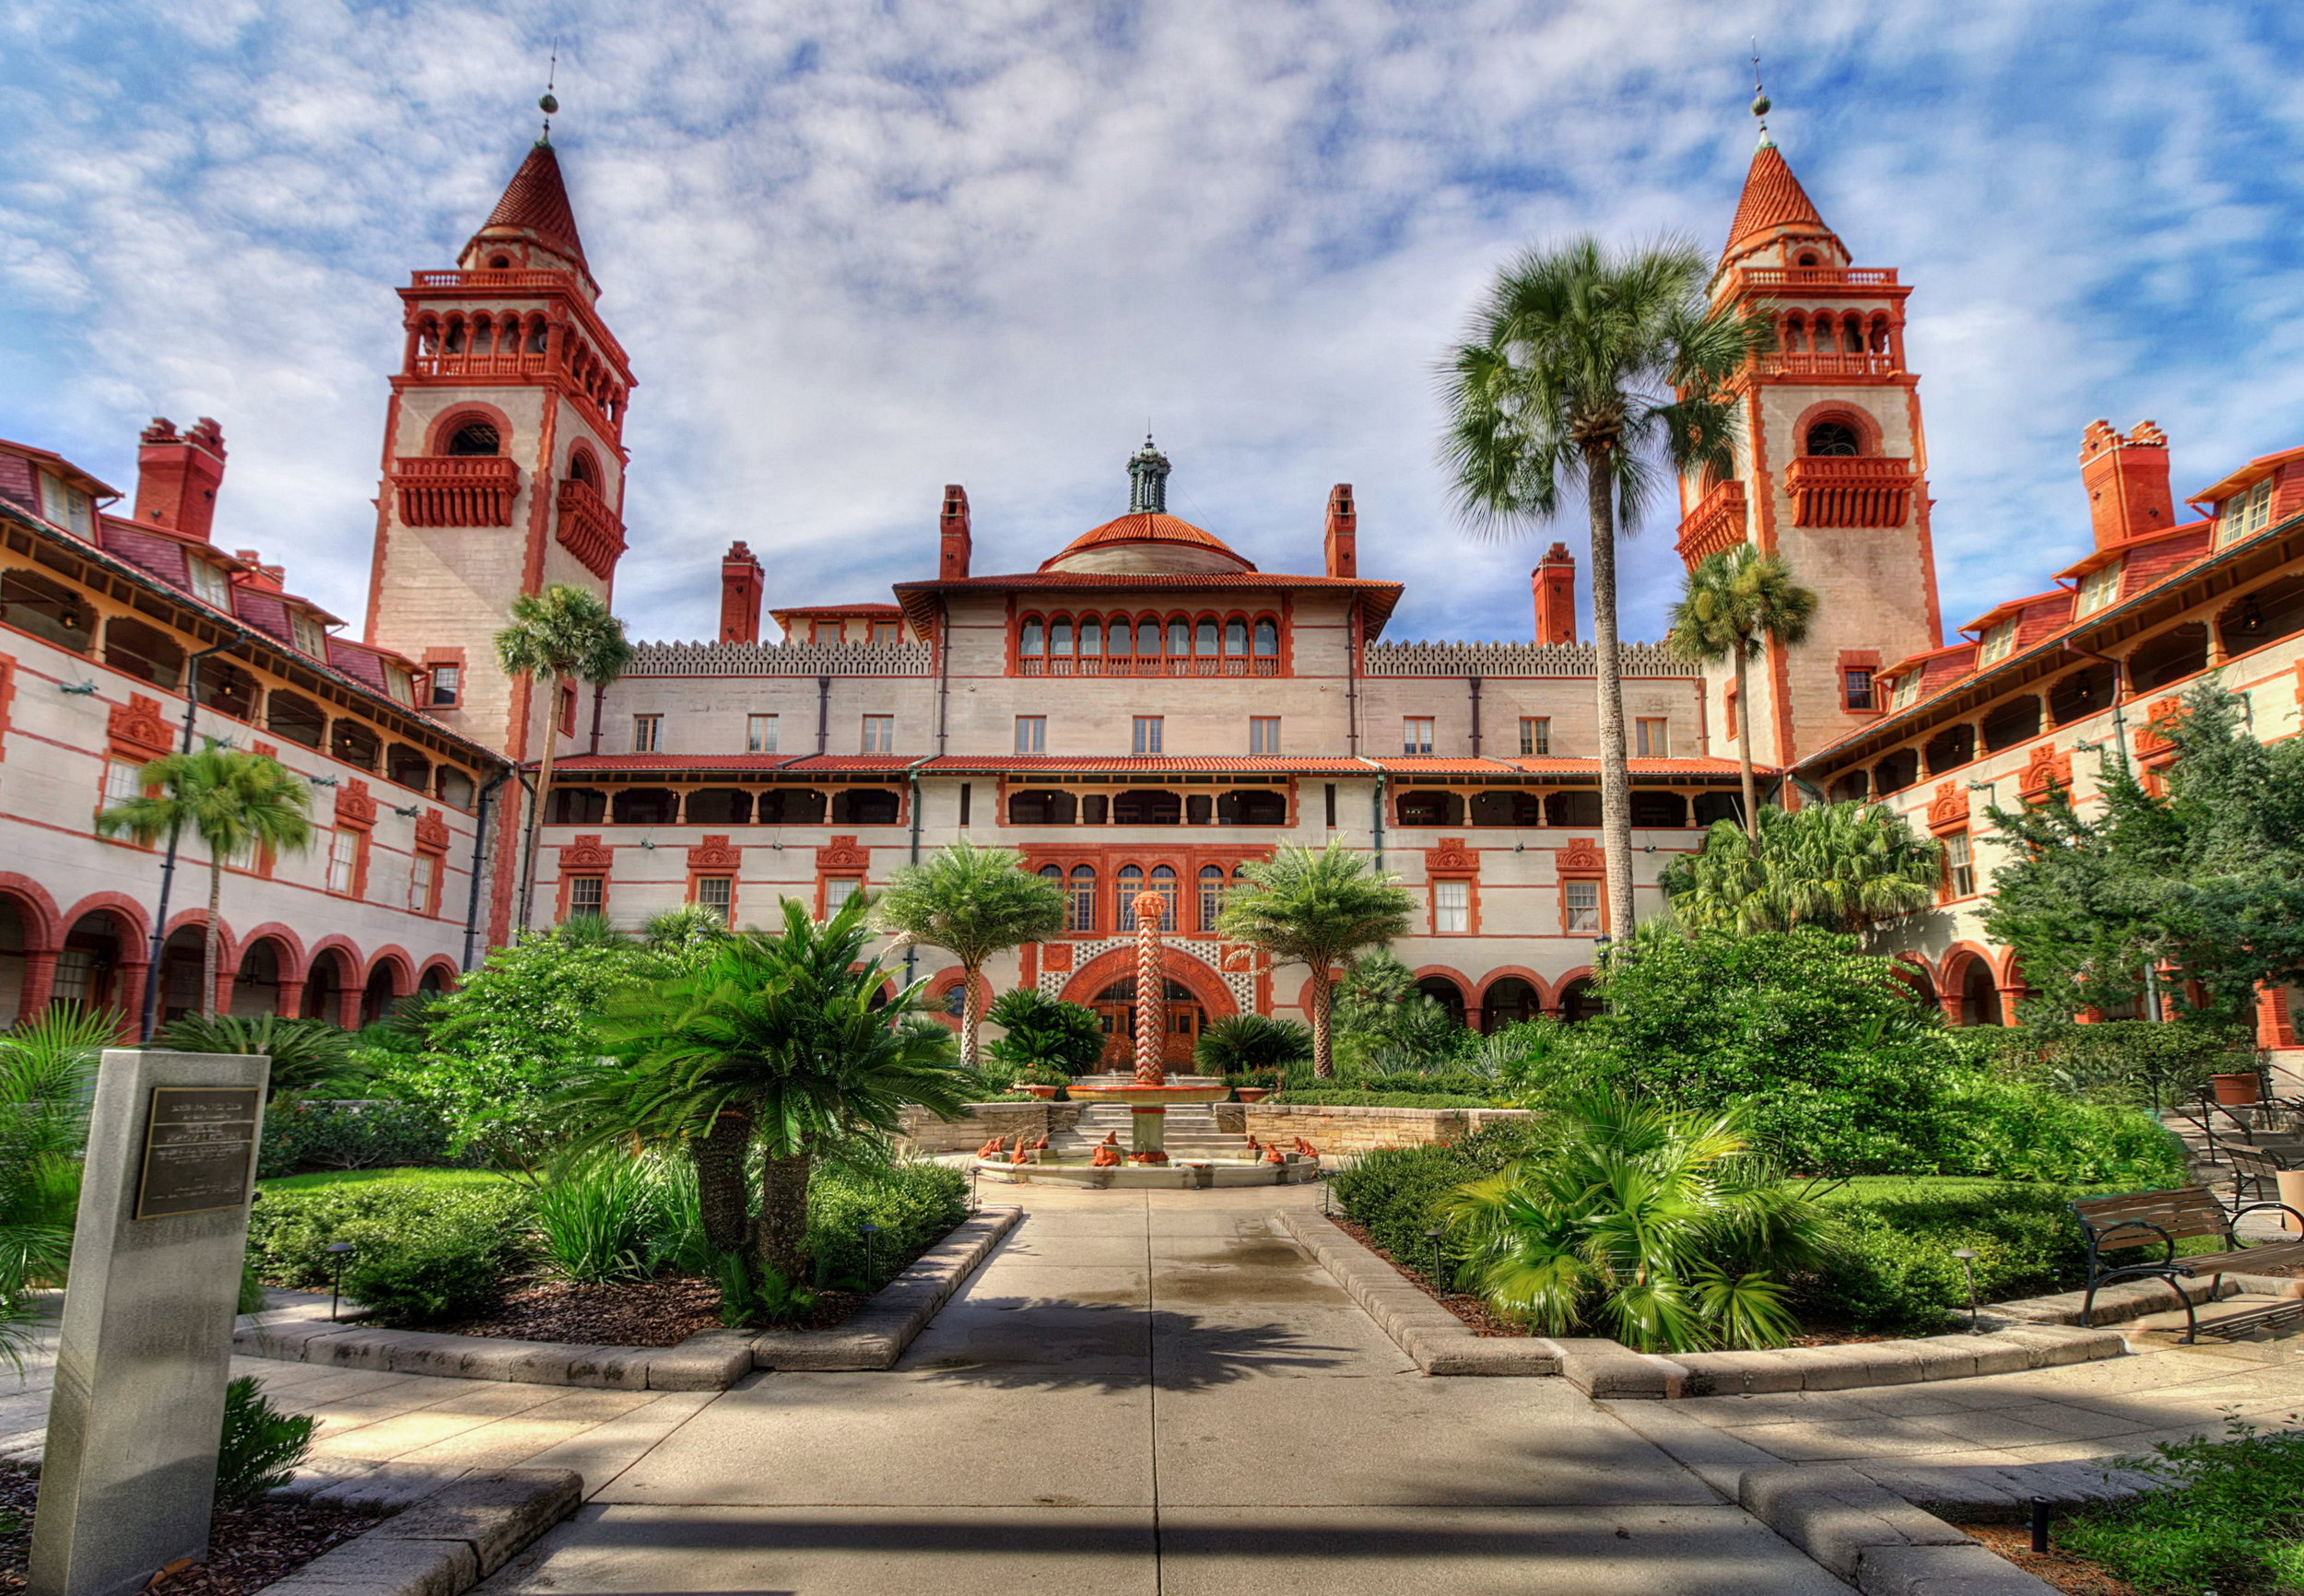 Hotel Ponce de Leon at Flagler College, photos Wikipedia Commons